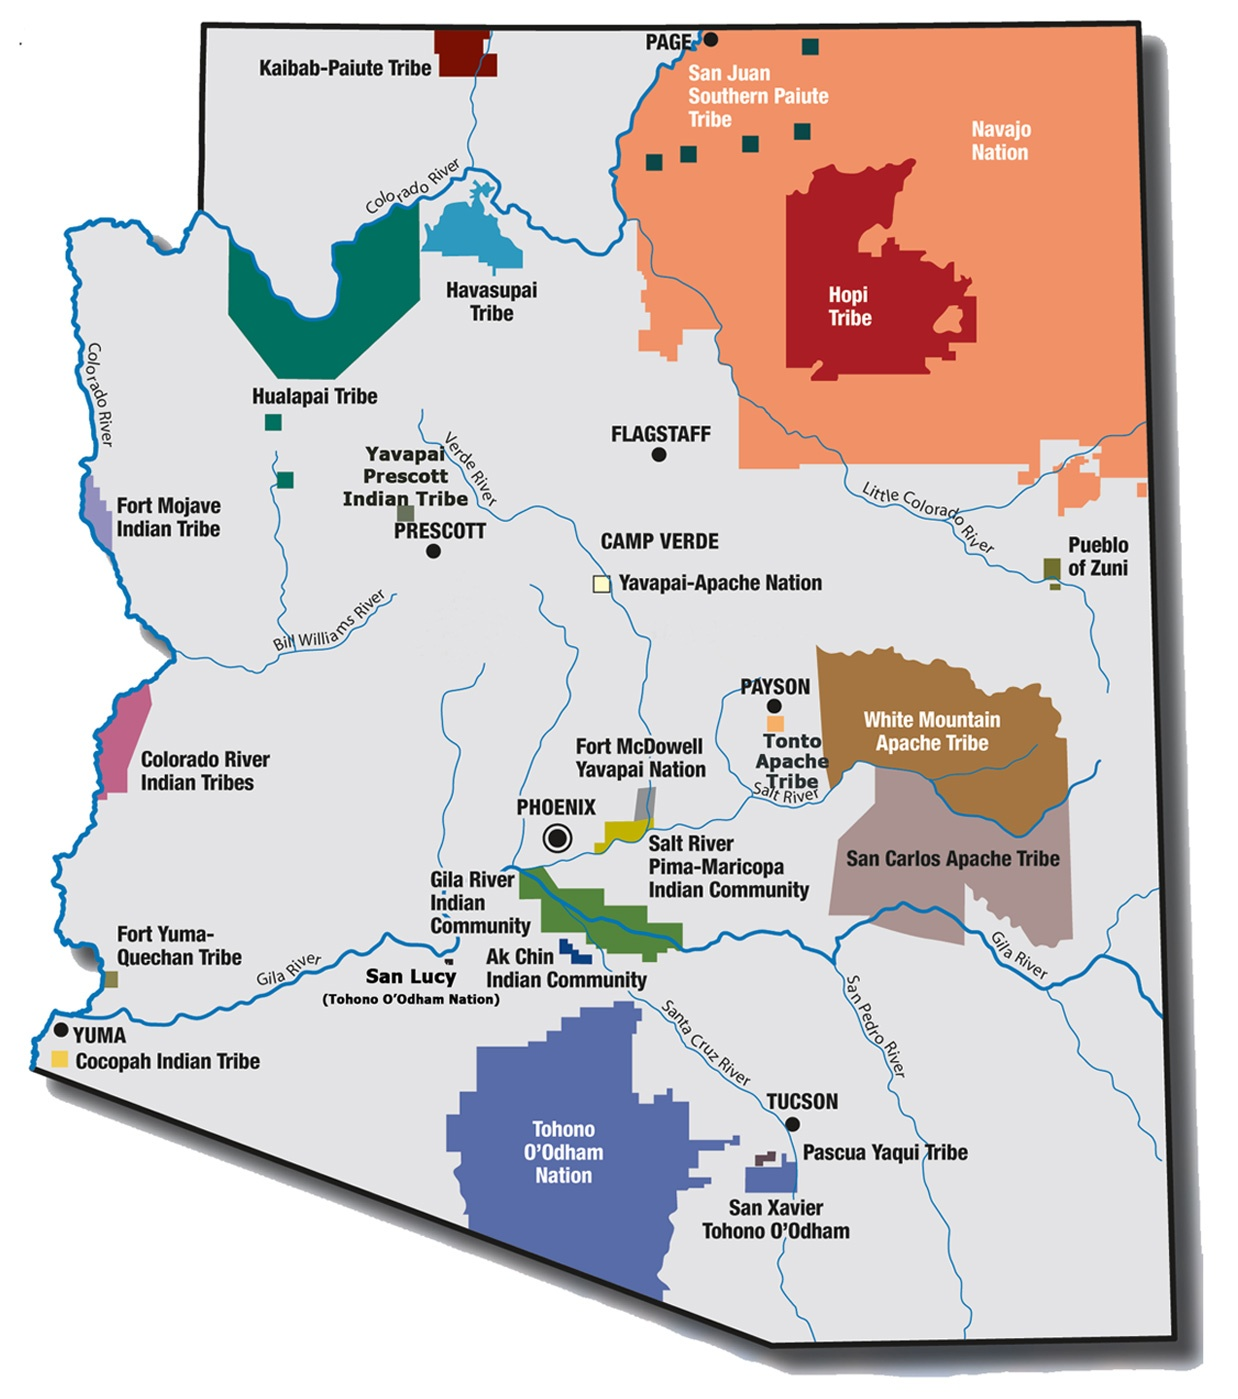 Arizona Victim Advocacy Resources – SOUTHWEST INDIGENOUS ... on tonto apache, san carlos mexico map, pascua yaqui tribe, navajo indian reservation map, fort peck indian reservation map, tohono o'odham indian reservation map, white earth indian reservation map, yuma indian map, utah ute indian reservation map, pechanga indian reservation map, hopi reservation, la jolla indian reservation map, red lake indian reservation map, plains apache, yavapai-apache nation, gila bend indian reservation map, kaibab indian reservation, agua caliente indian reservation map, united states indian reservation map, ak chin indian reservation map, ak-chin indian community, san carlos hunting unit map, pala indian reservation map, california indian reservation map, fort apache indian reservation, skull valley, ramona indian reservation map, santee indian reservation map, laguna pueblo, gila river indian community, mesa grande indian reservation map,